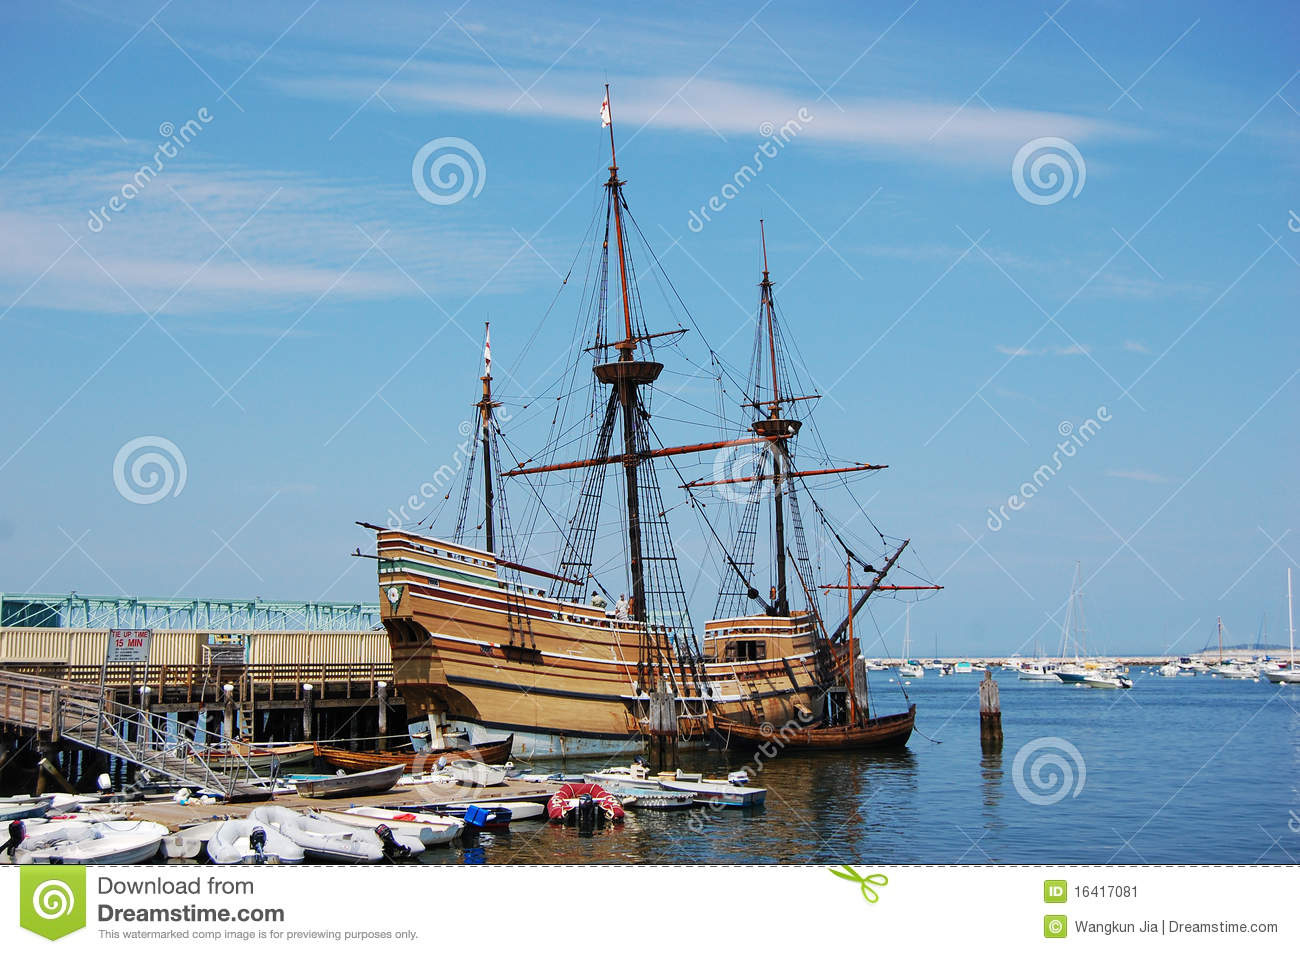 El Mayflower II